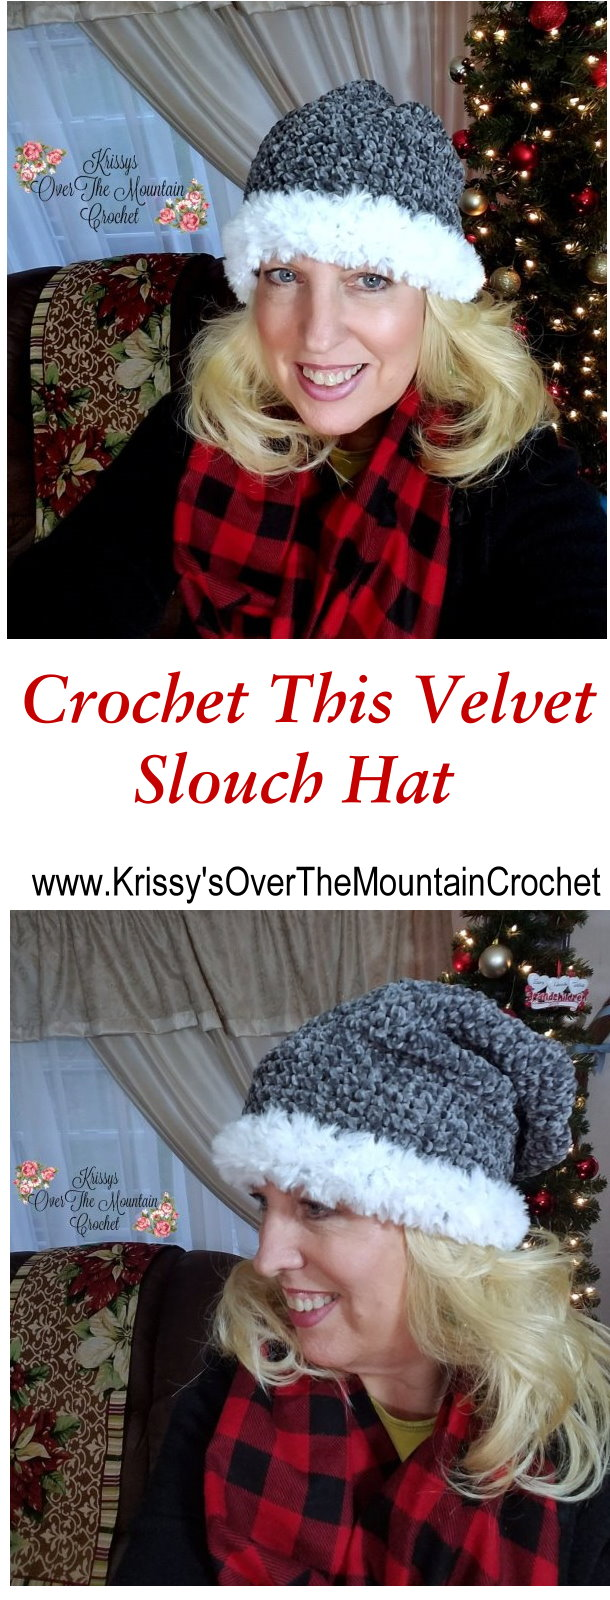 Crochet this velvet slouch hat in an evening. Add fake fur yarn to trim the brim. When you try on this cutie you won't want to take it off!